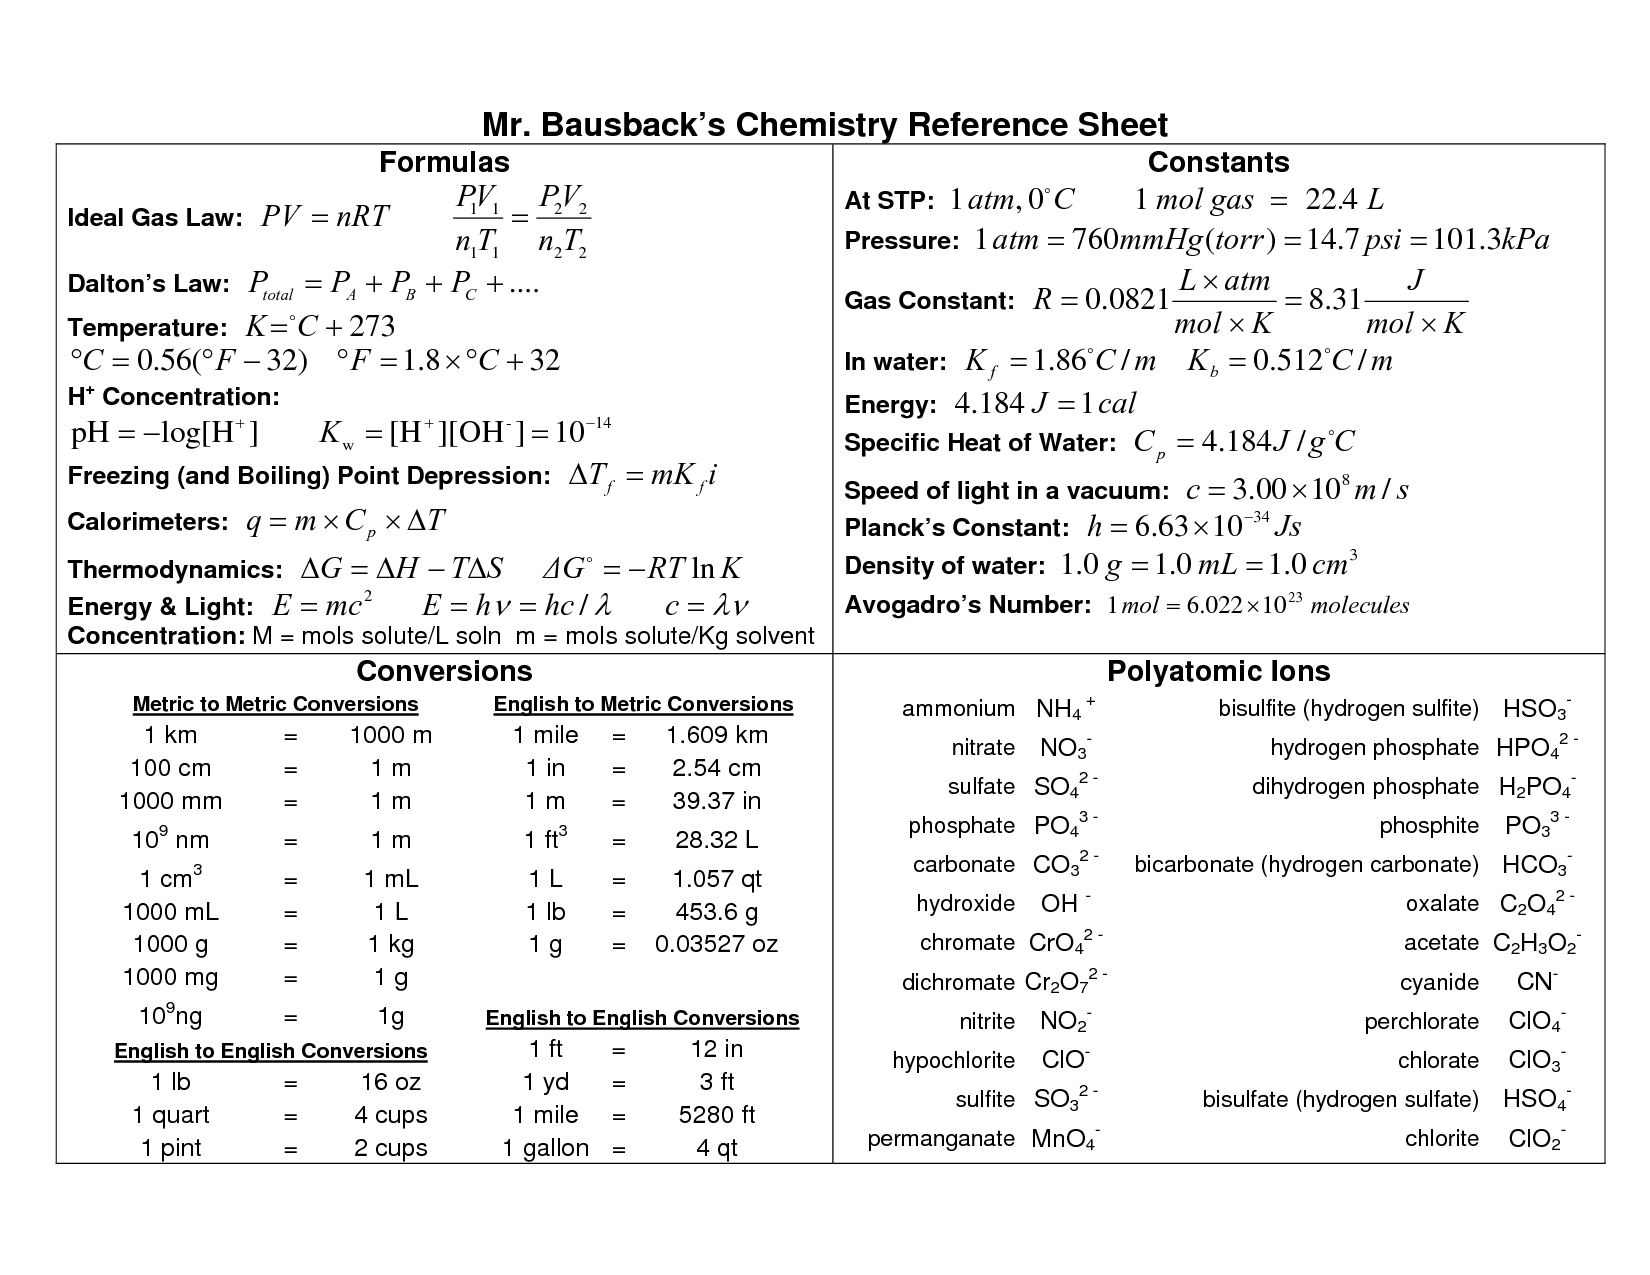 High School Chemistry Formula Sheet Chemistry Reference Sheet